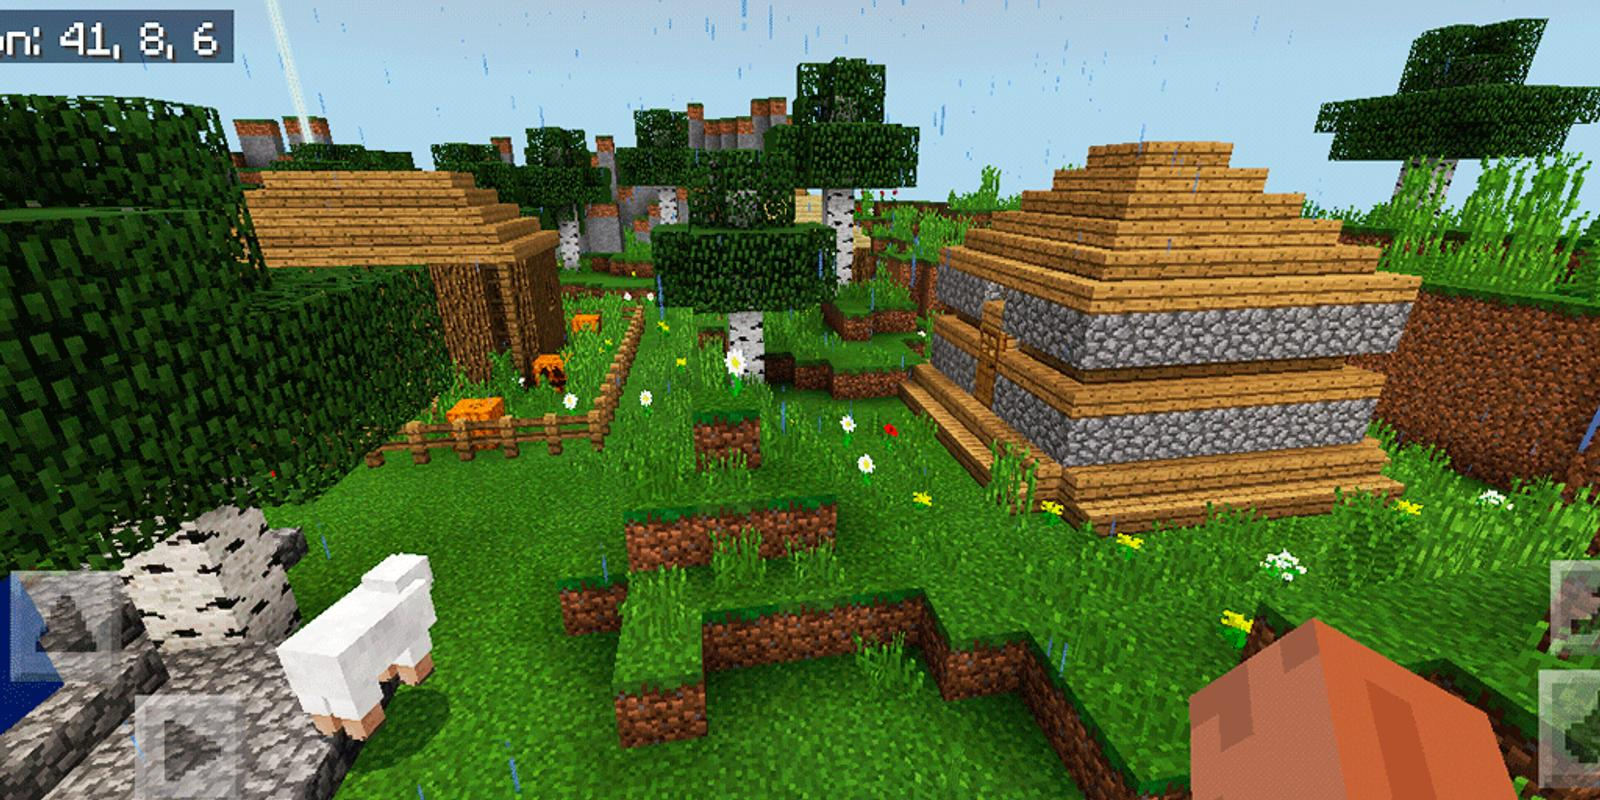 map for mcpe apk screenshot king of the world map for mcpe apk screenshot